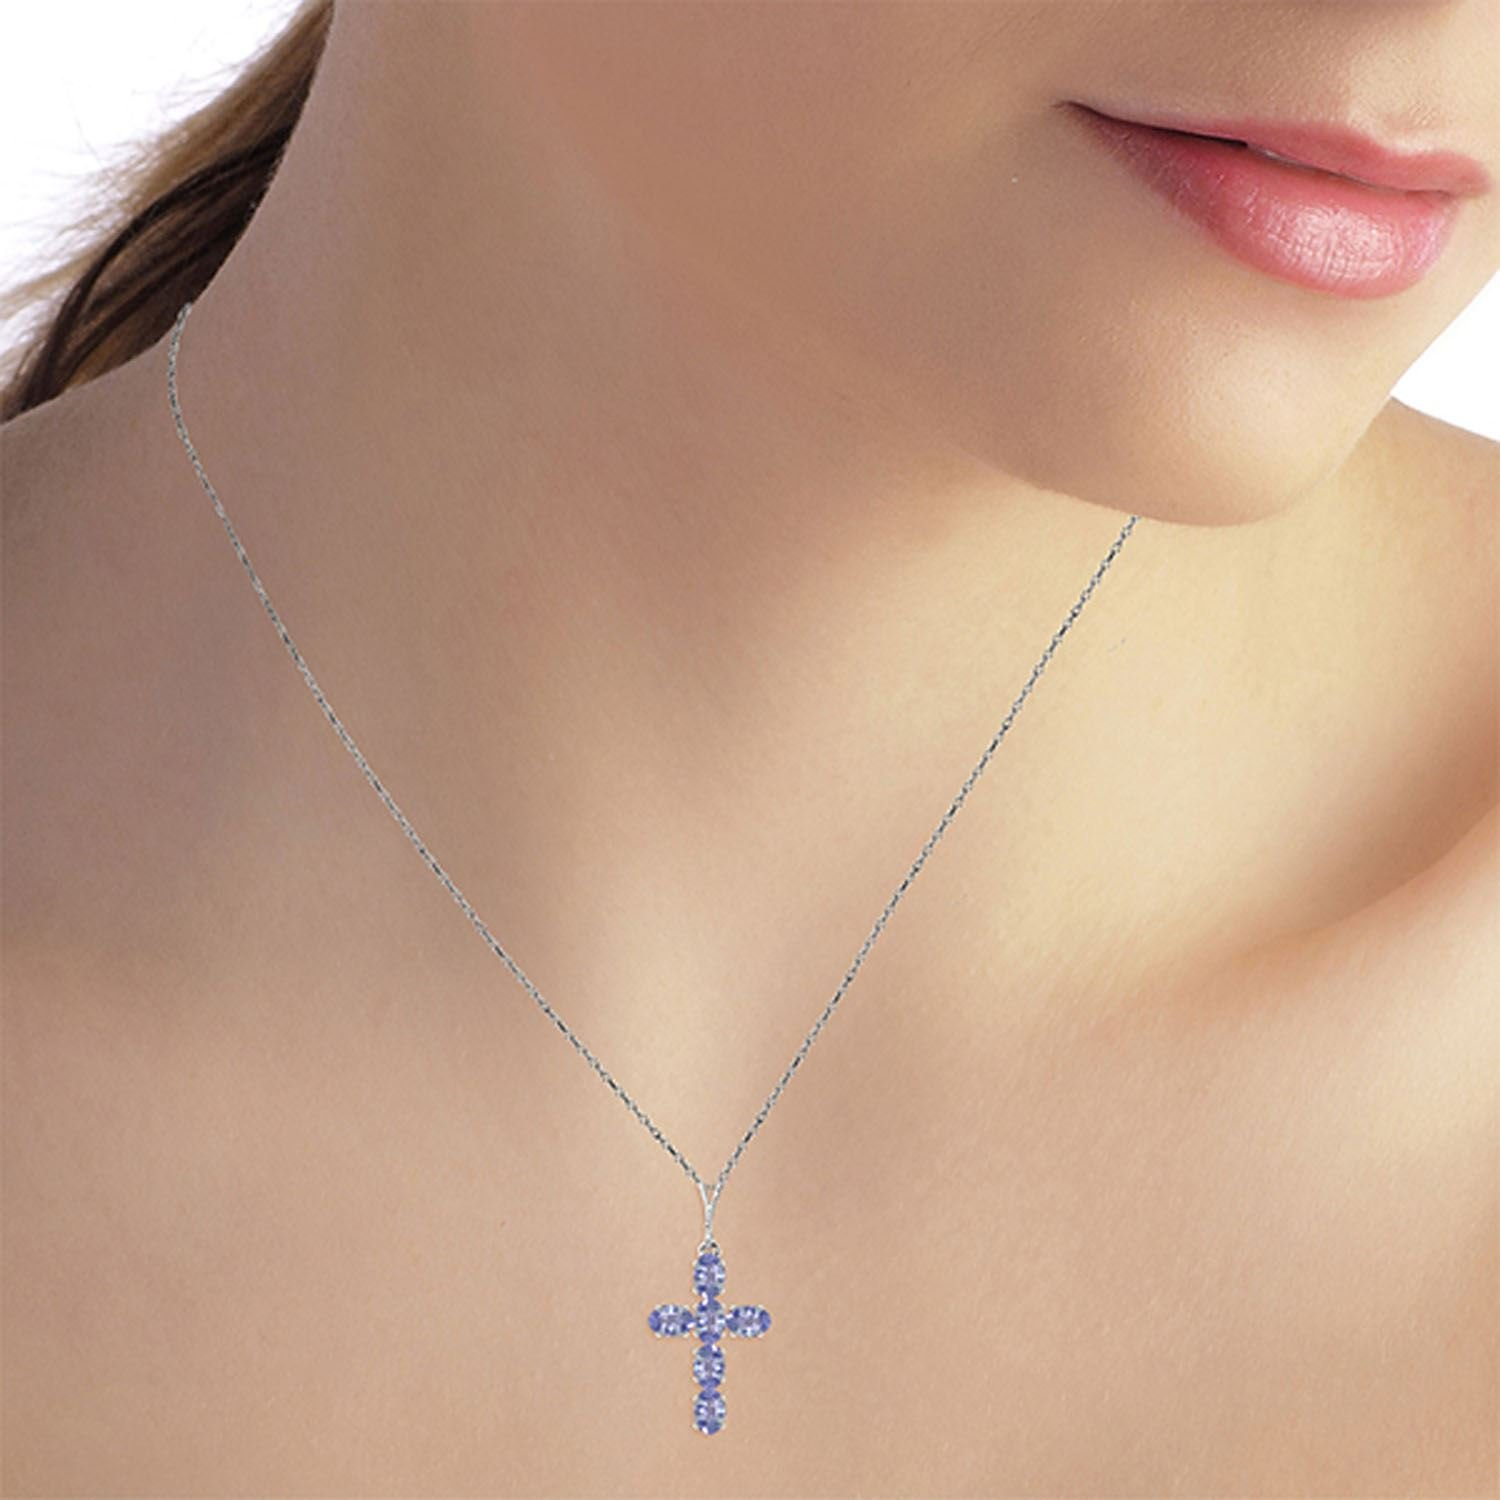 ALARRI 1.5 CTW 14K Solid White Gold Cross Necklace Natural Tanzanite with 22 Inch Chain Length 3779-W-22